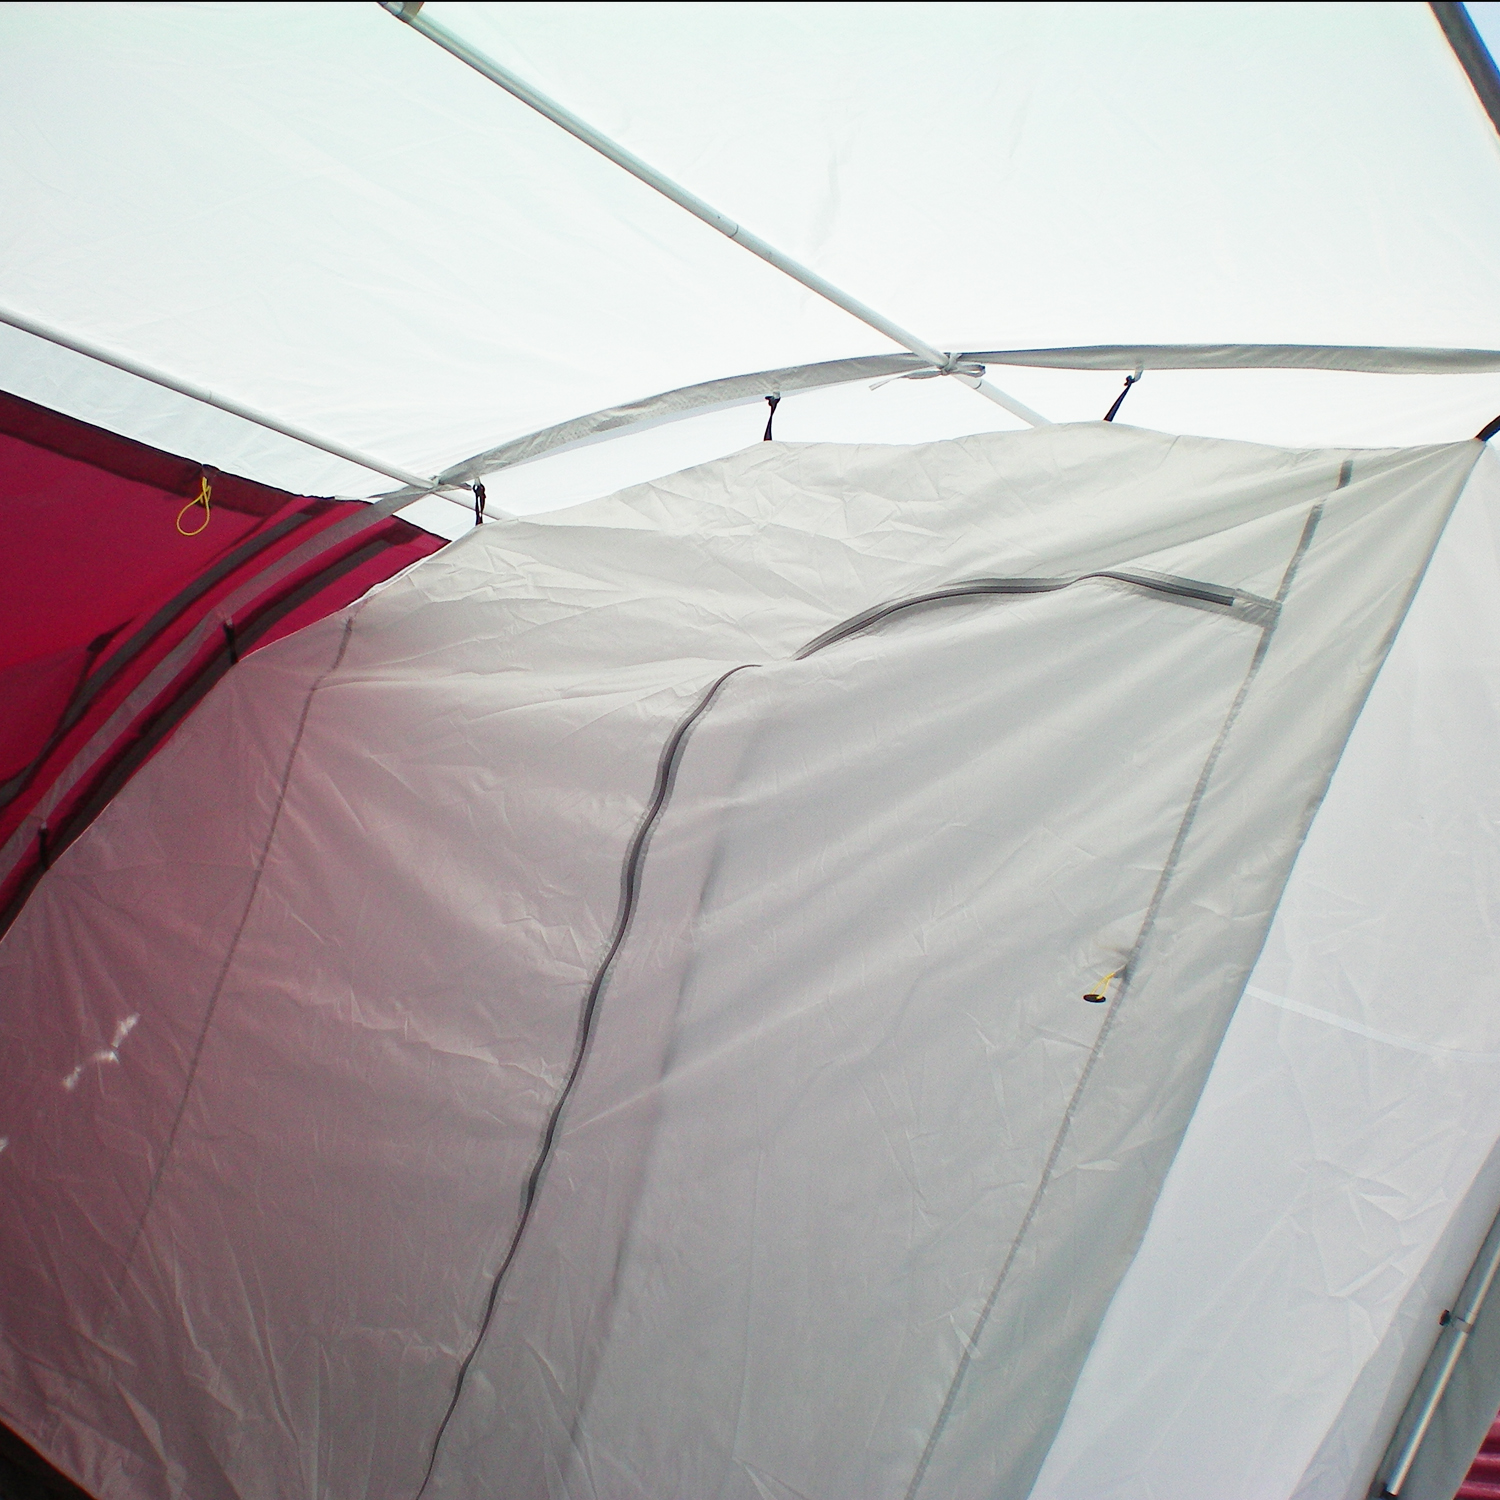 Awning Inner Tent Amp C Amp Tech Inner Tent For C Amp Tech